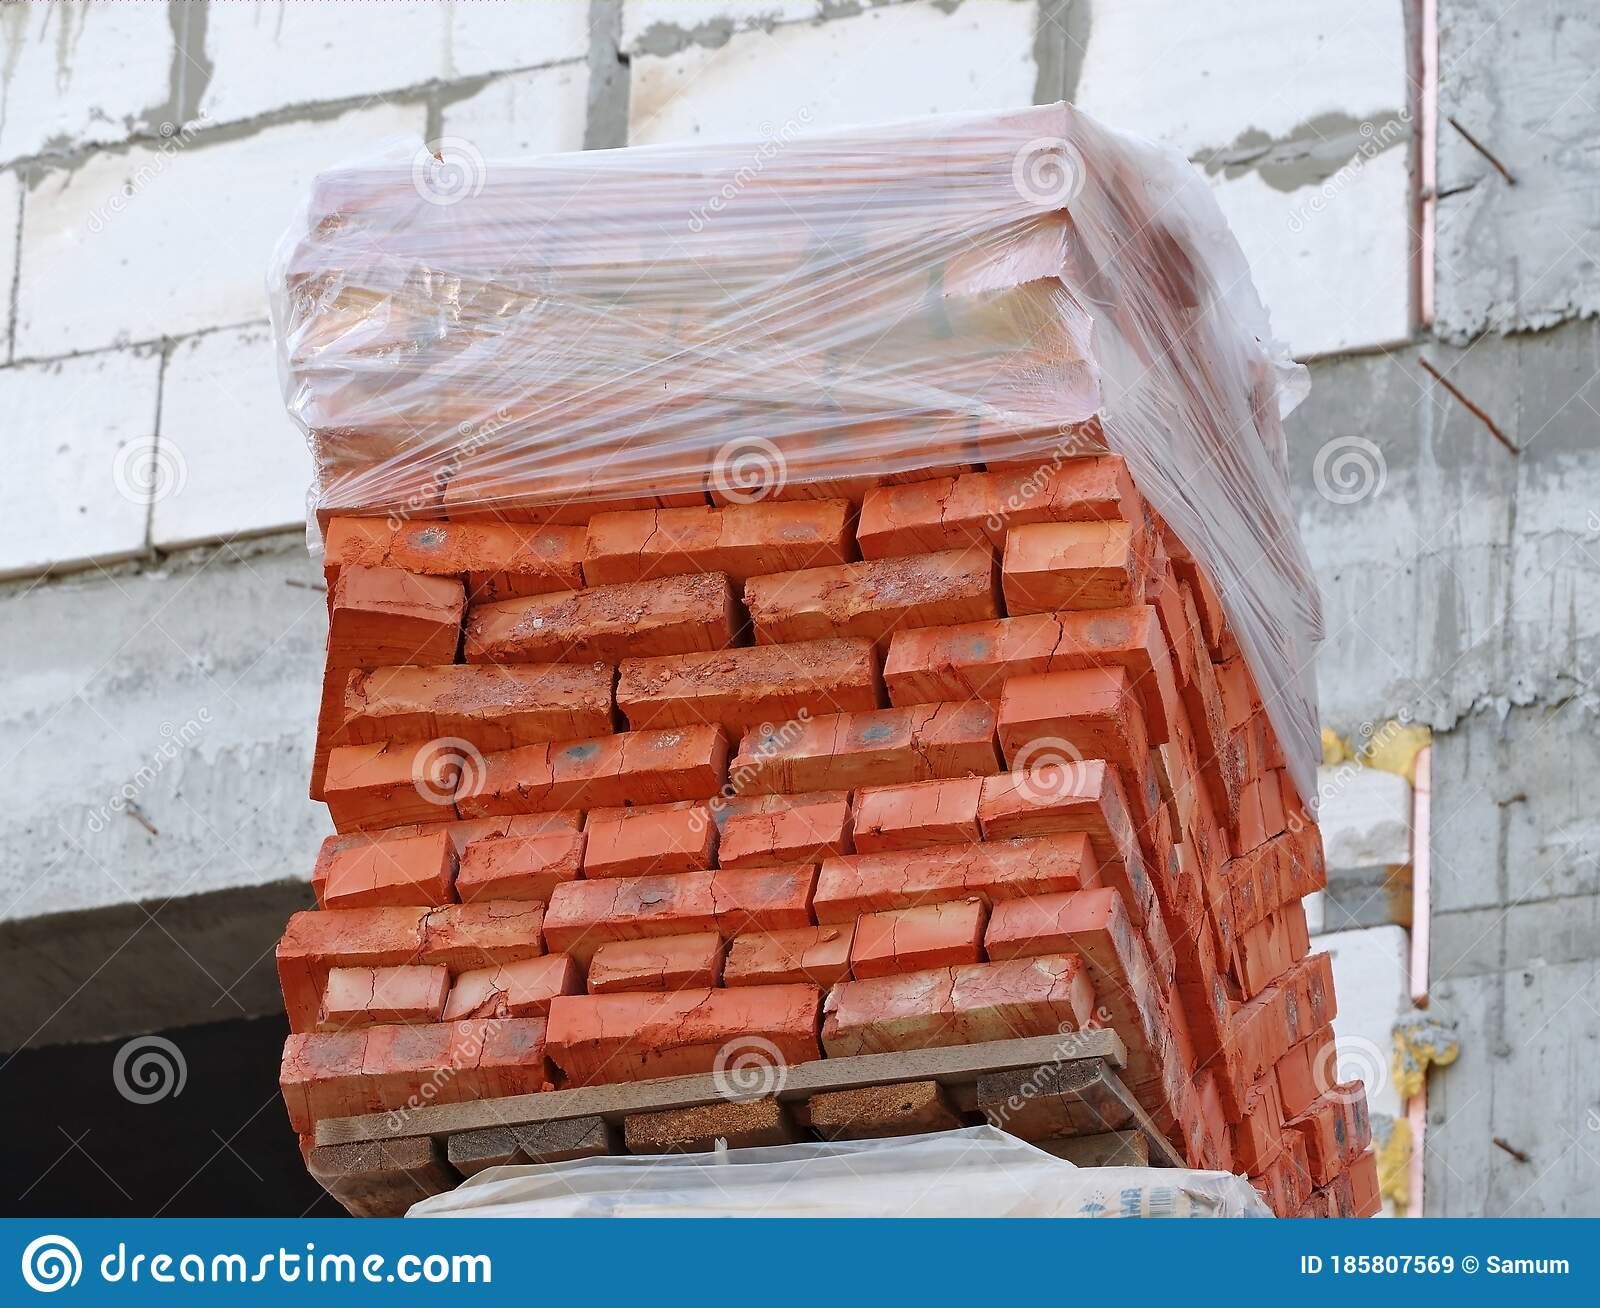 Red Bricks Stacked On Wooden Pallet Stock Image Image Of Exterior Pile 185807569